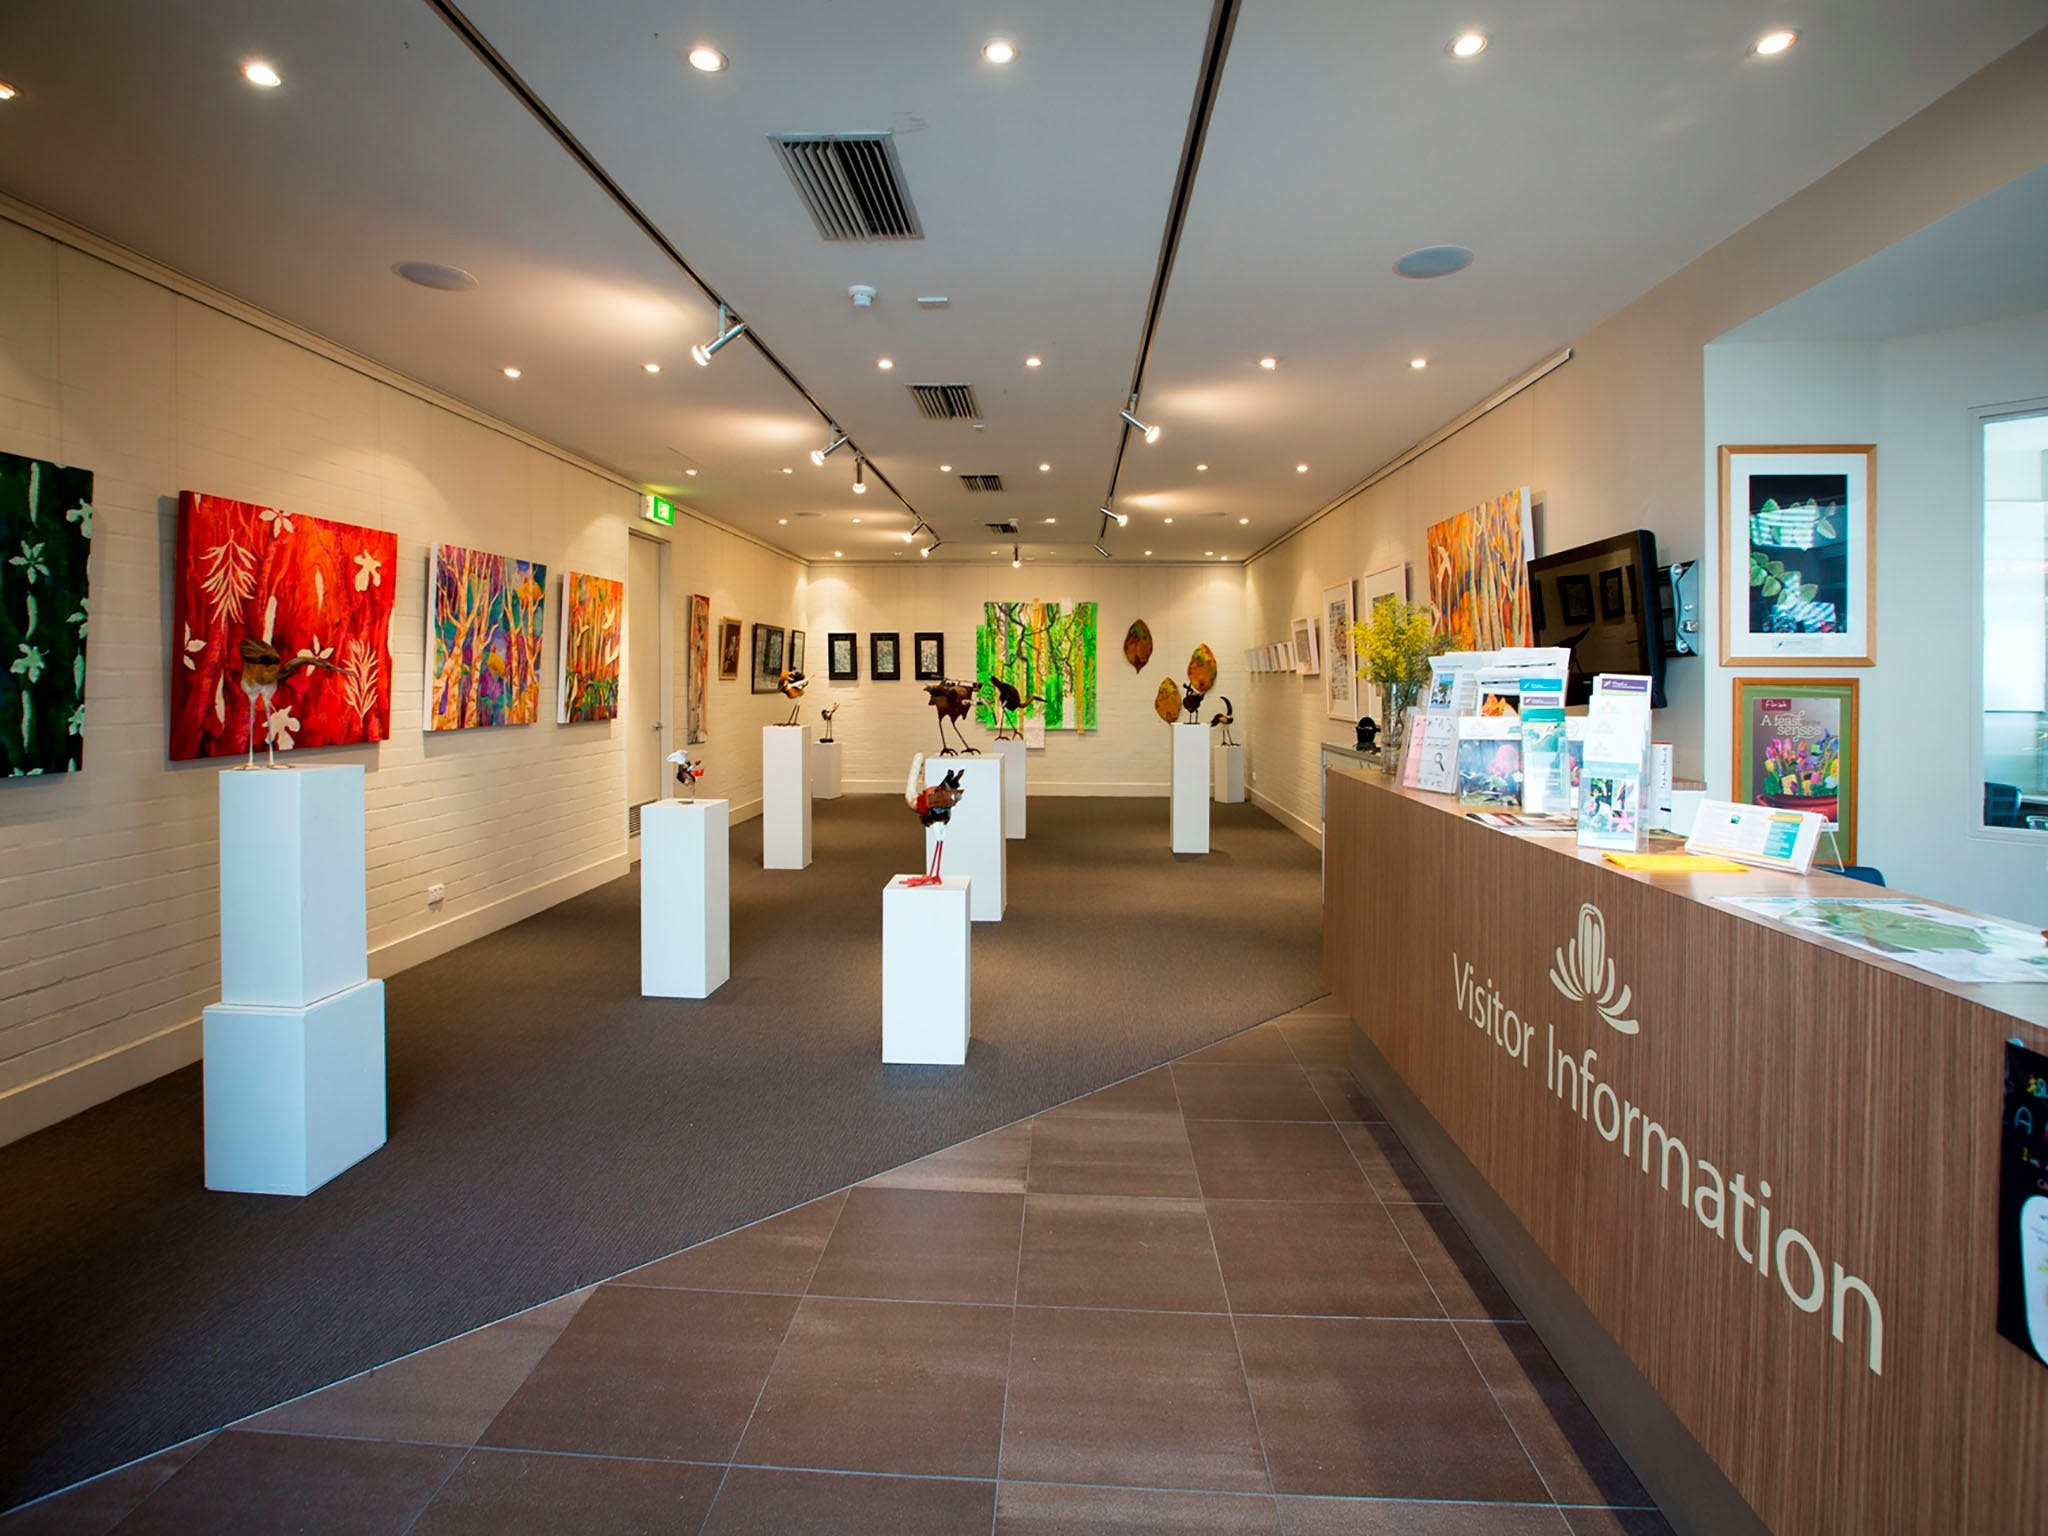 Australian National Botanic Gardens Visitor Centre Gallery - Newcastle Accommodation